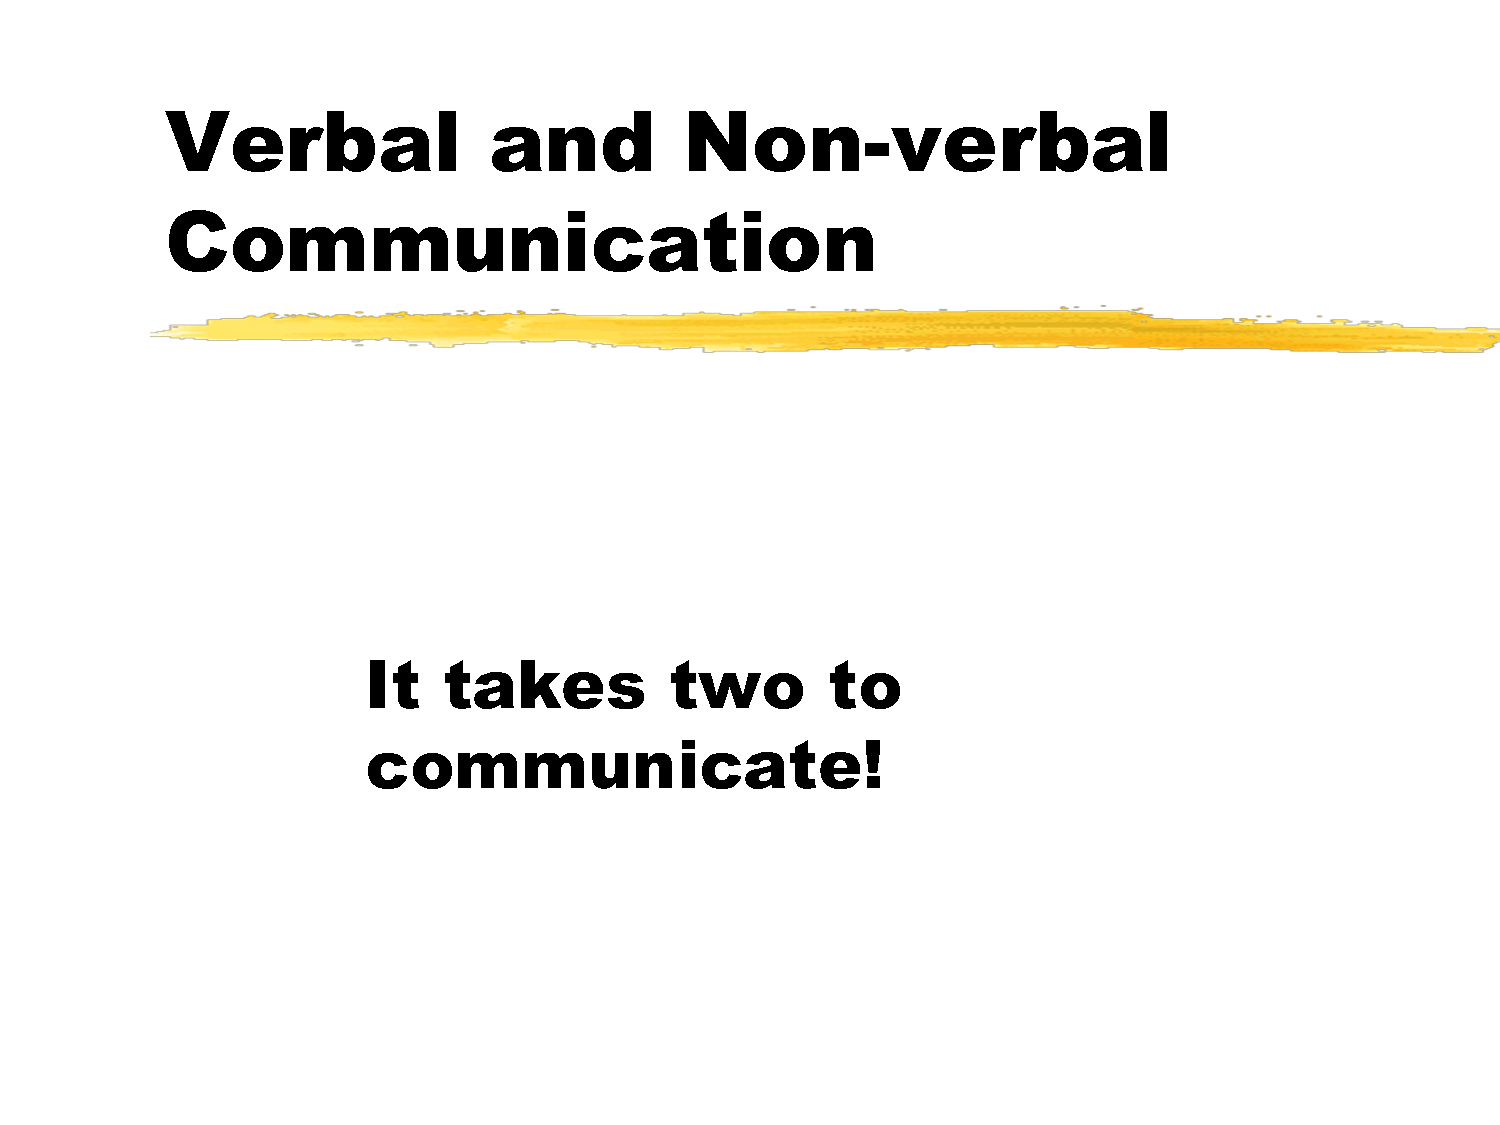 personal communication ethics statement about verbal and nonverbal communication